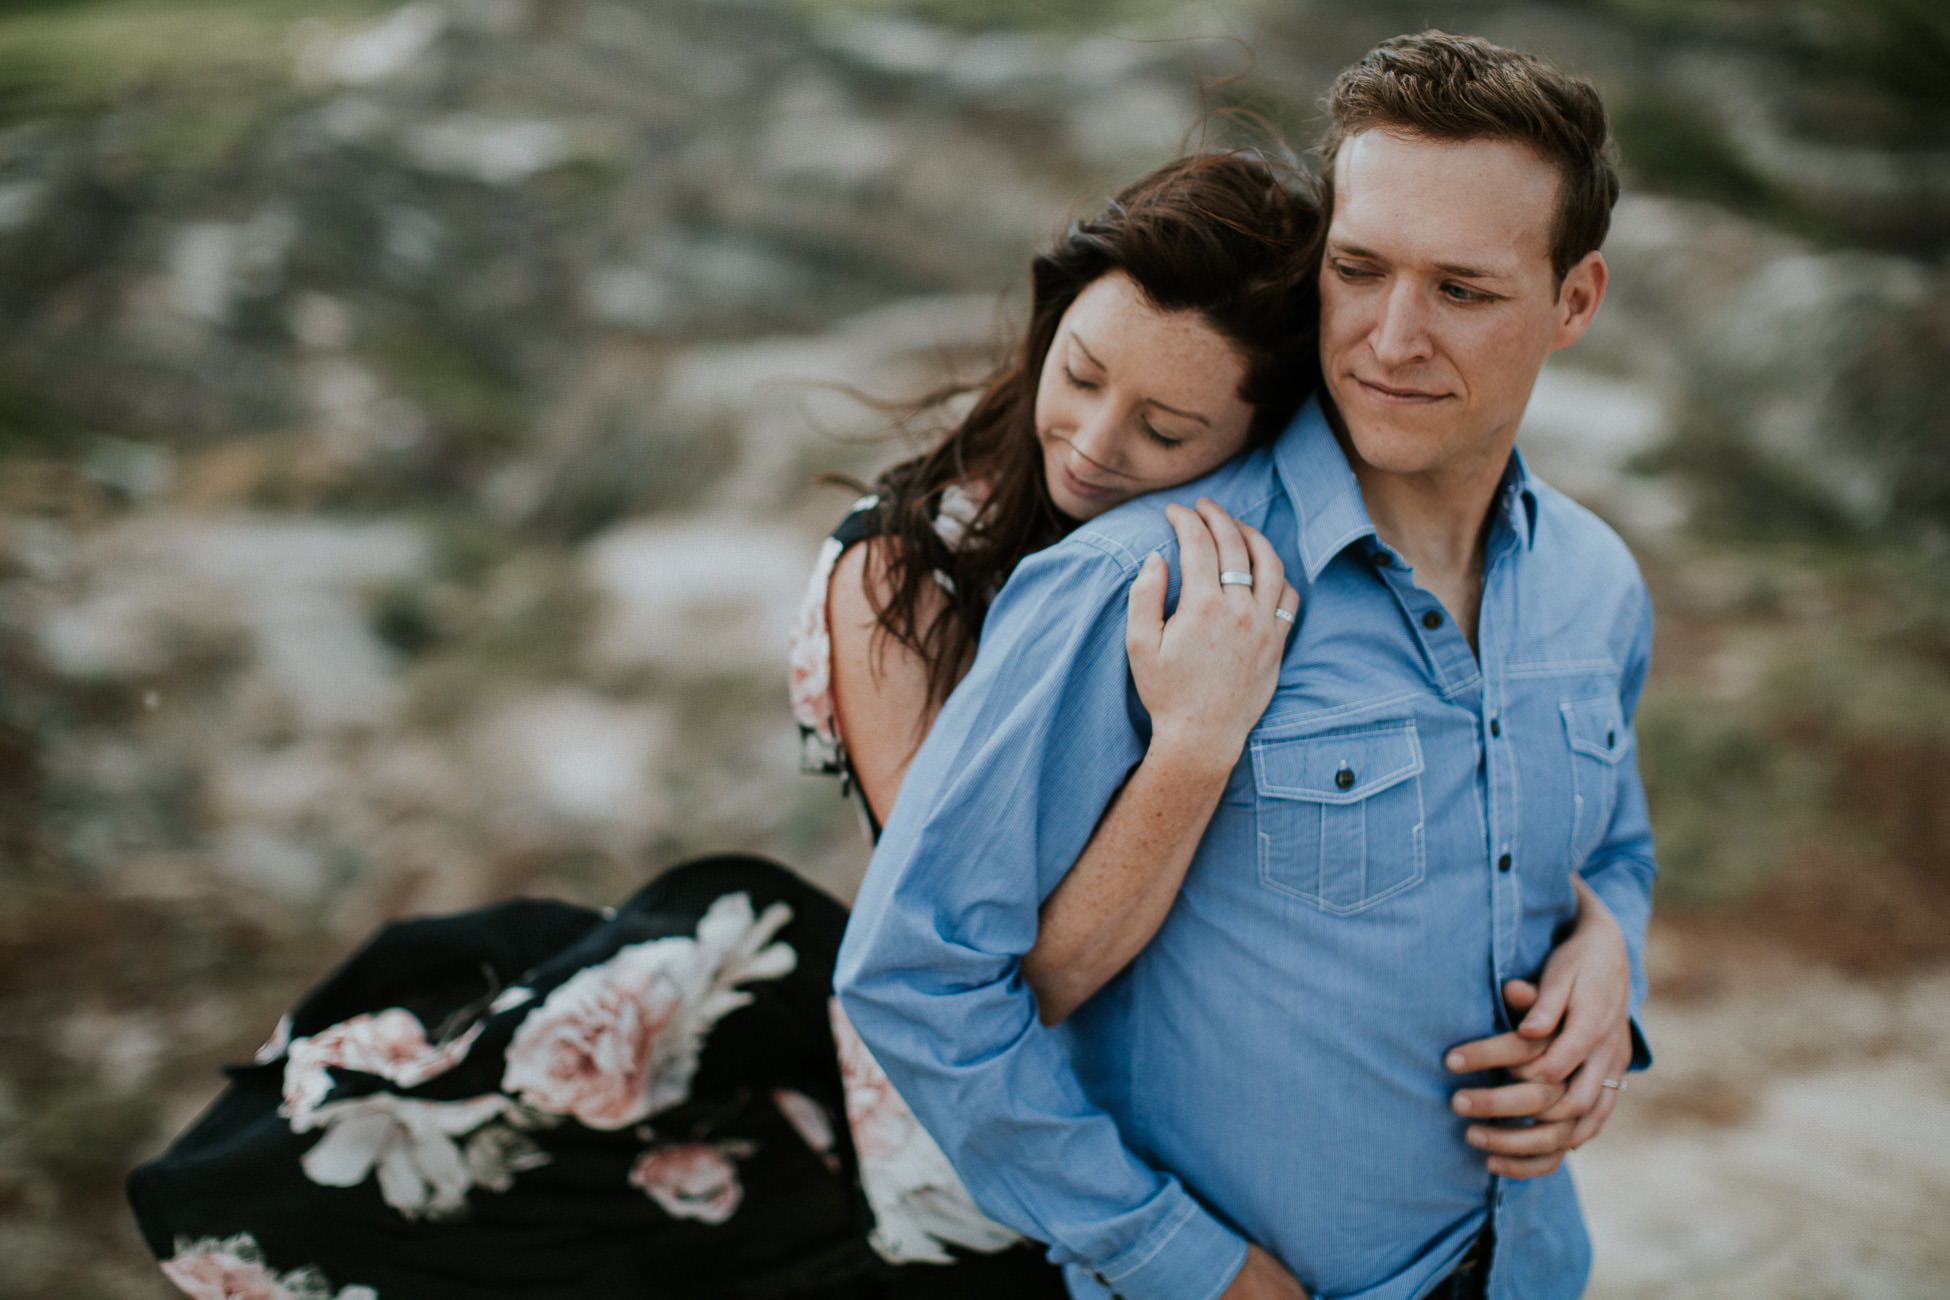 drumheller engagement photos - her dress is flowing in the wind